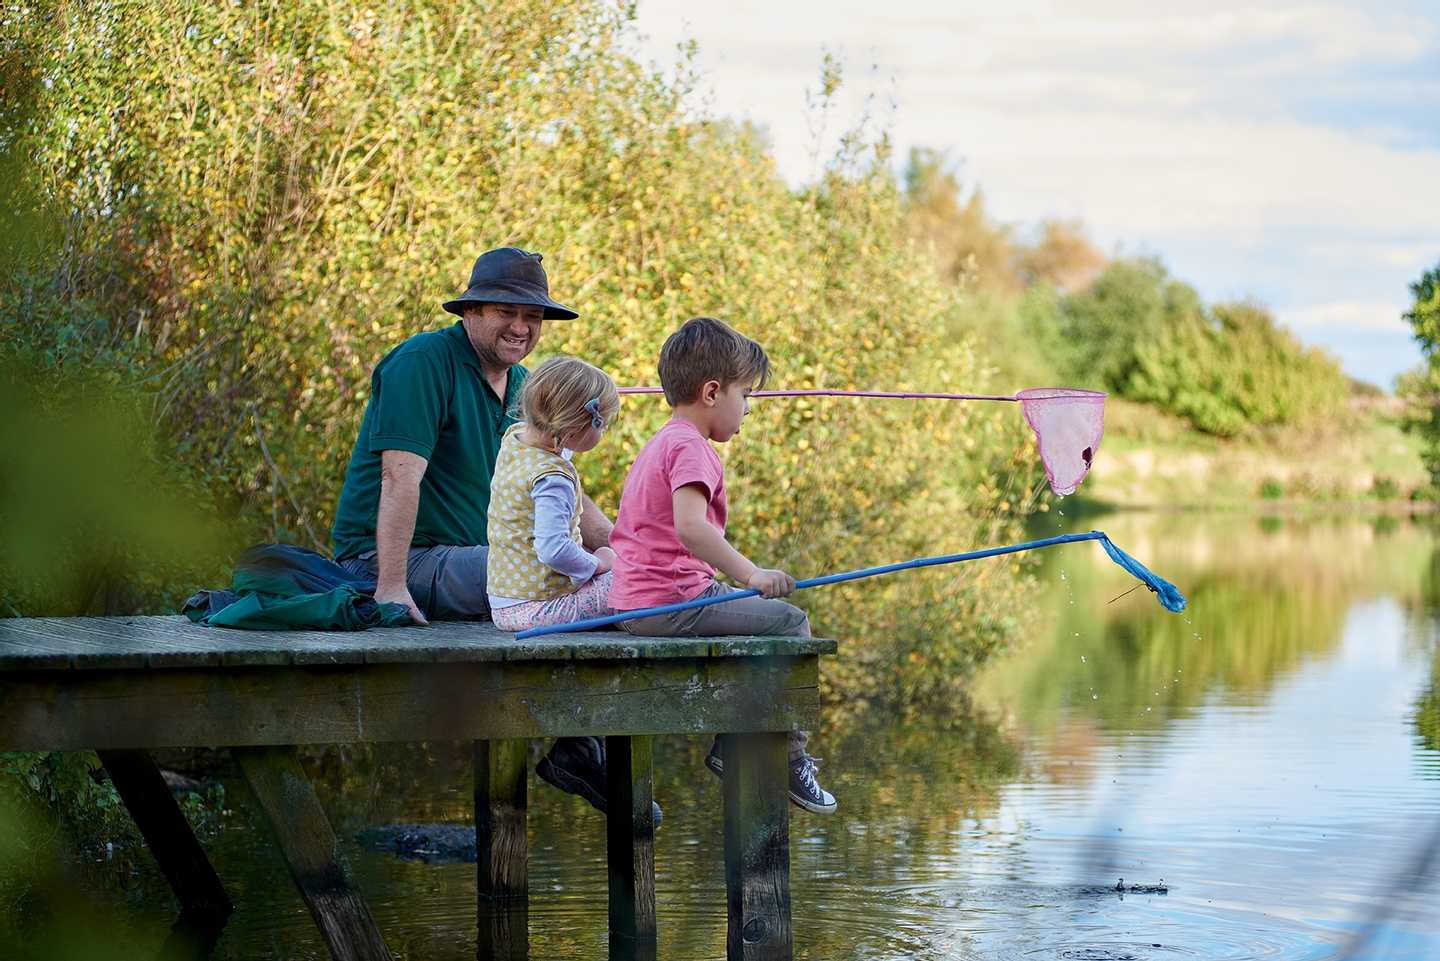 Guests pond dipping in the lake